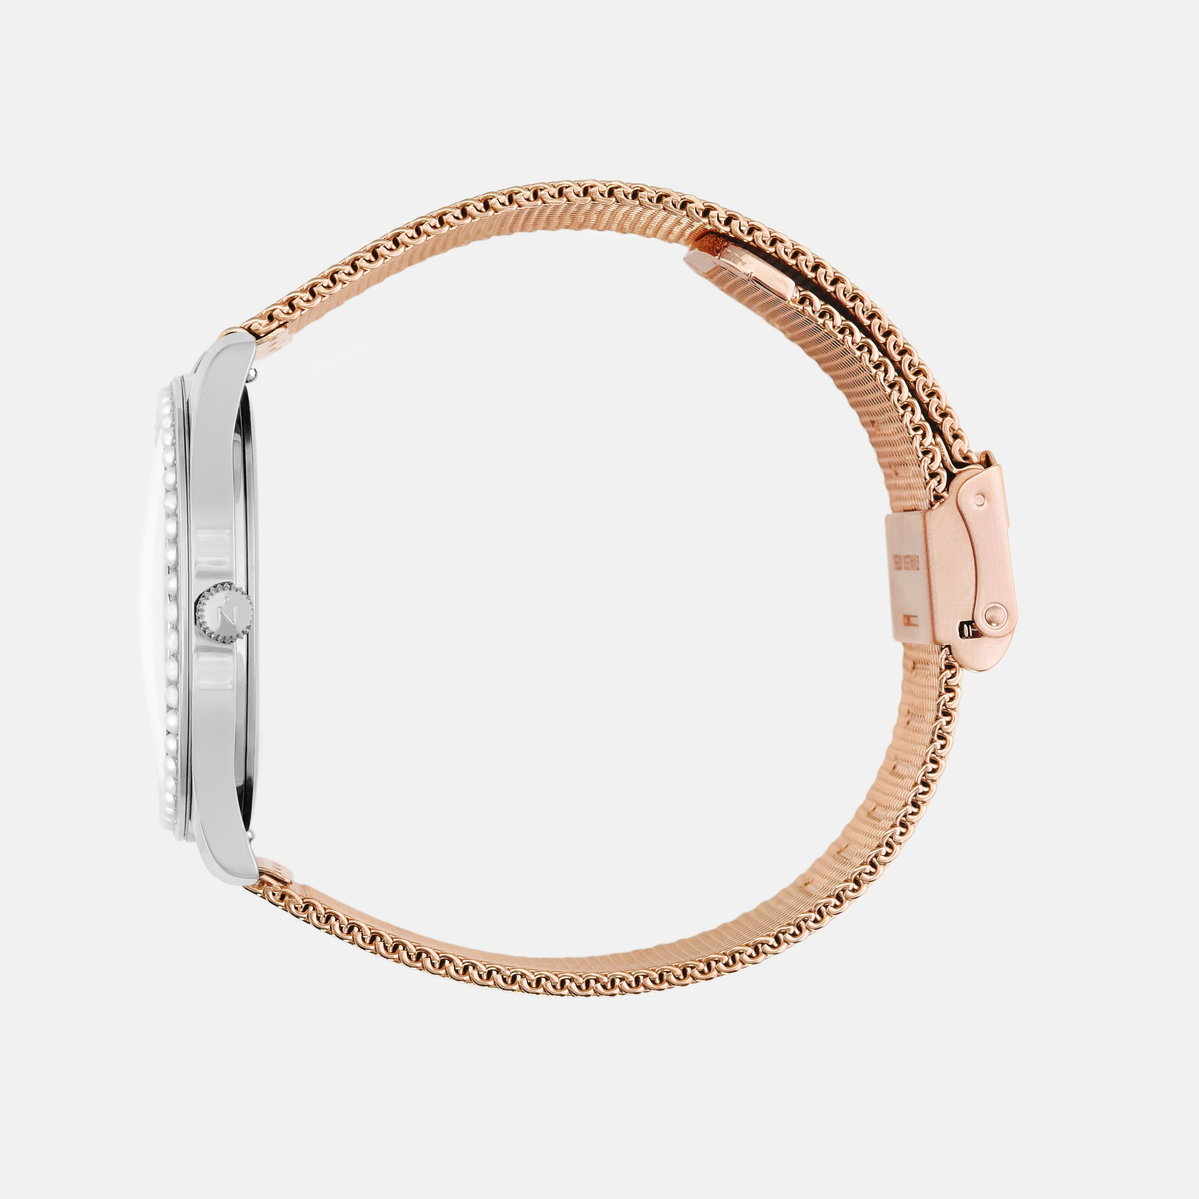 Lune 48 - Stainless Steel - Rose Gold Mesh